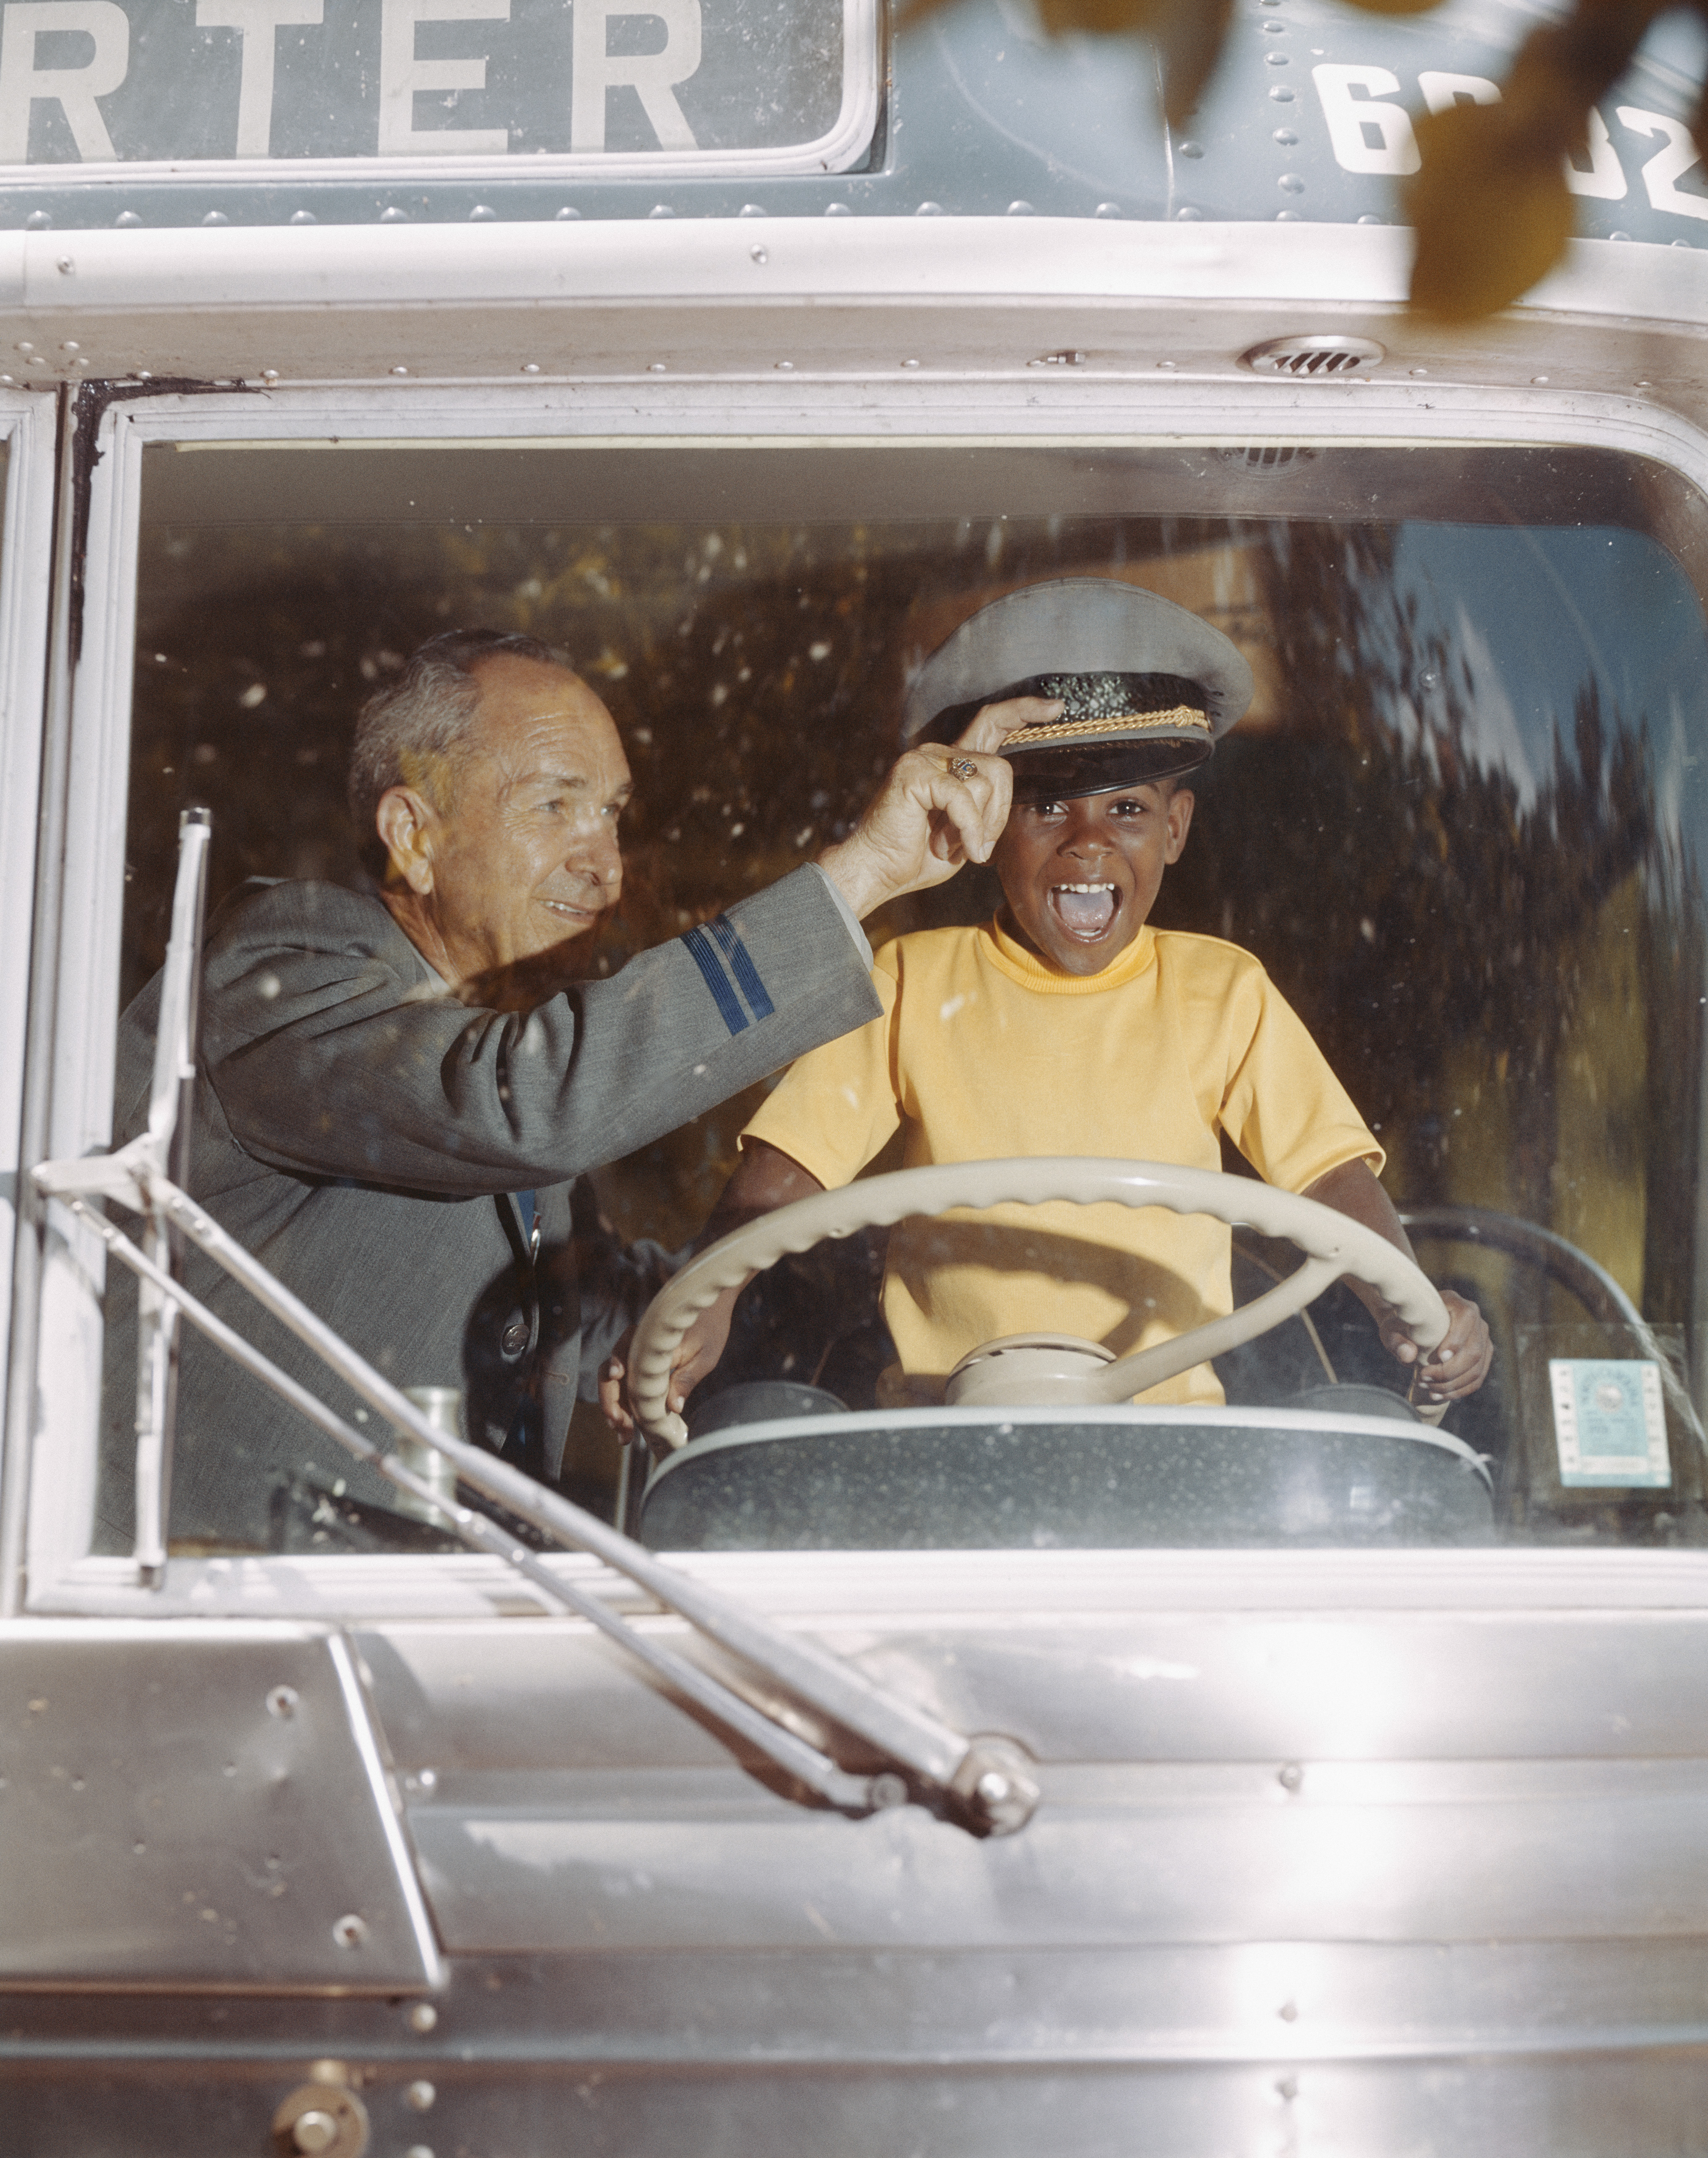 Bus driver giving hat to happy boy holding steering wheel